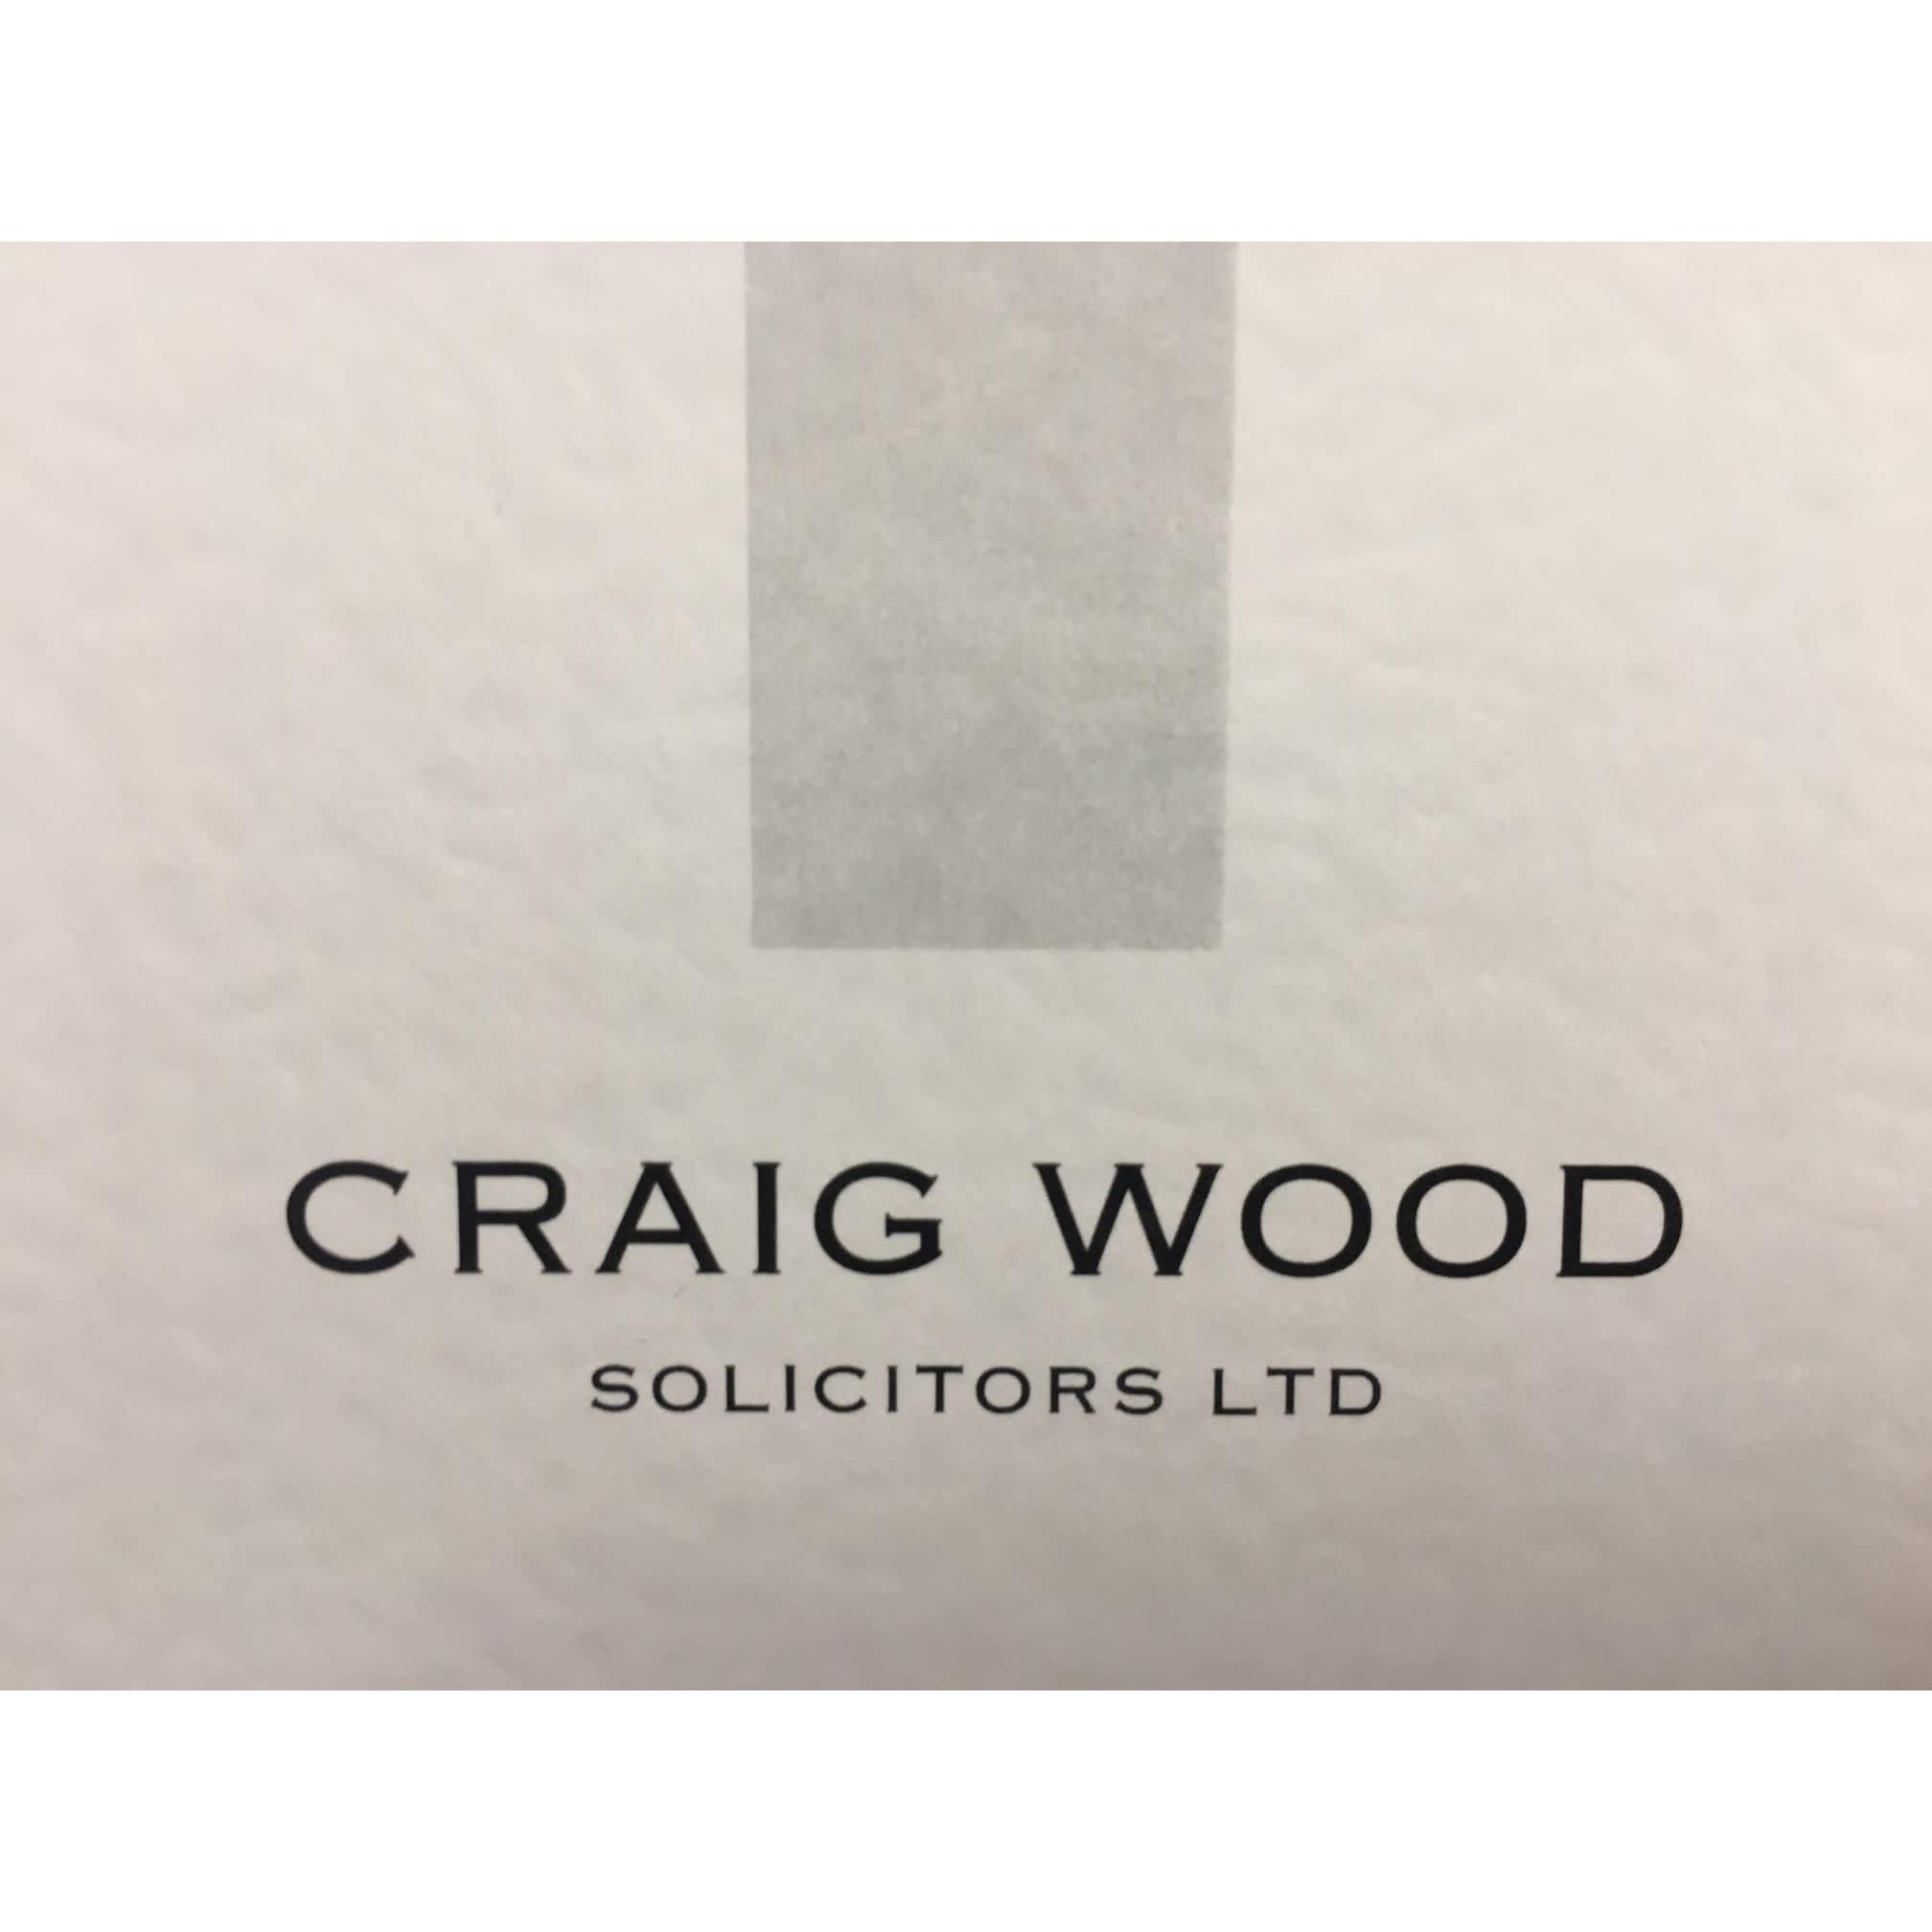 Craig Wood Solicitors